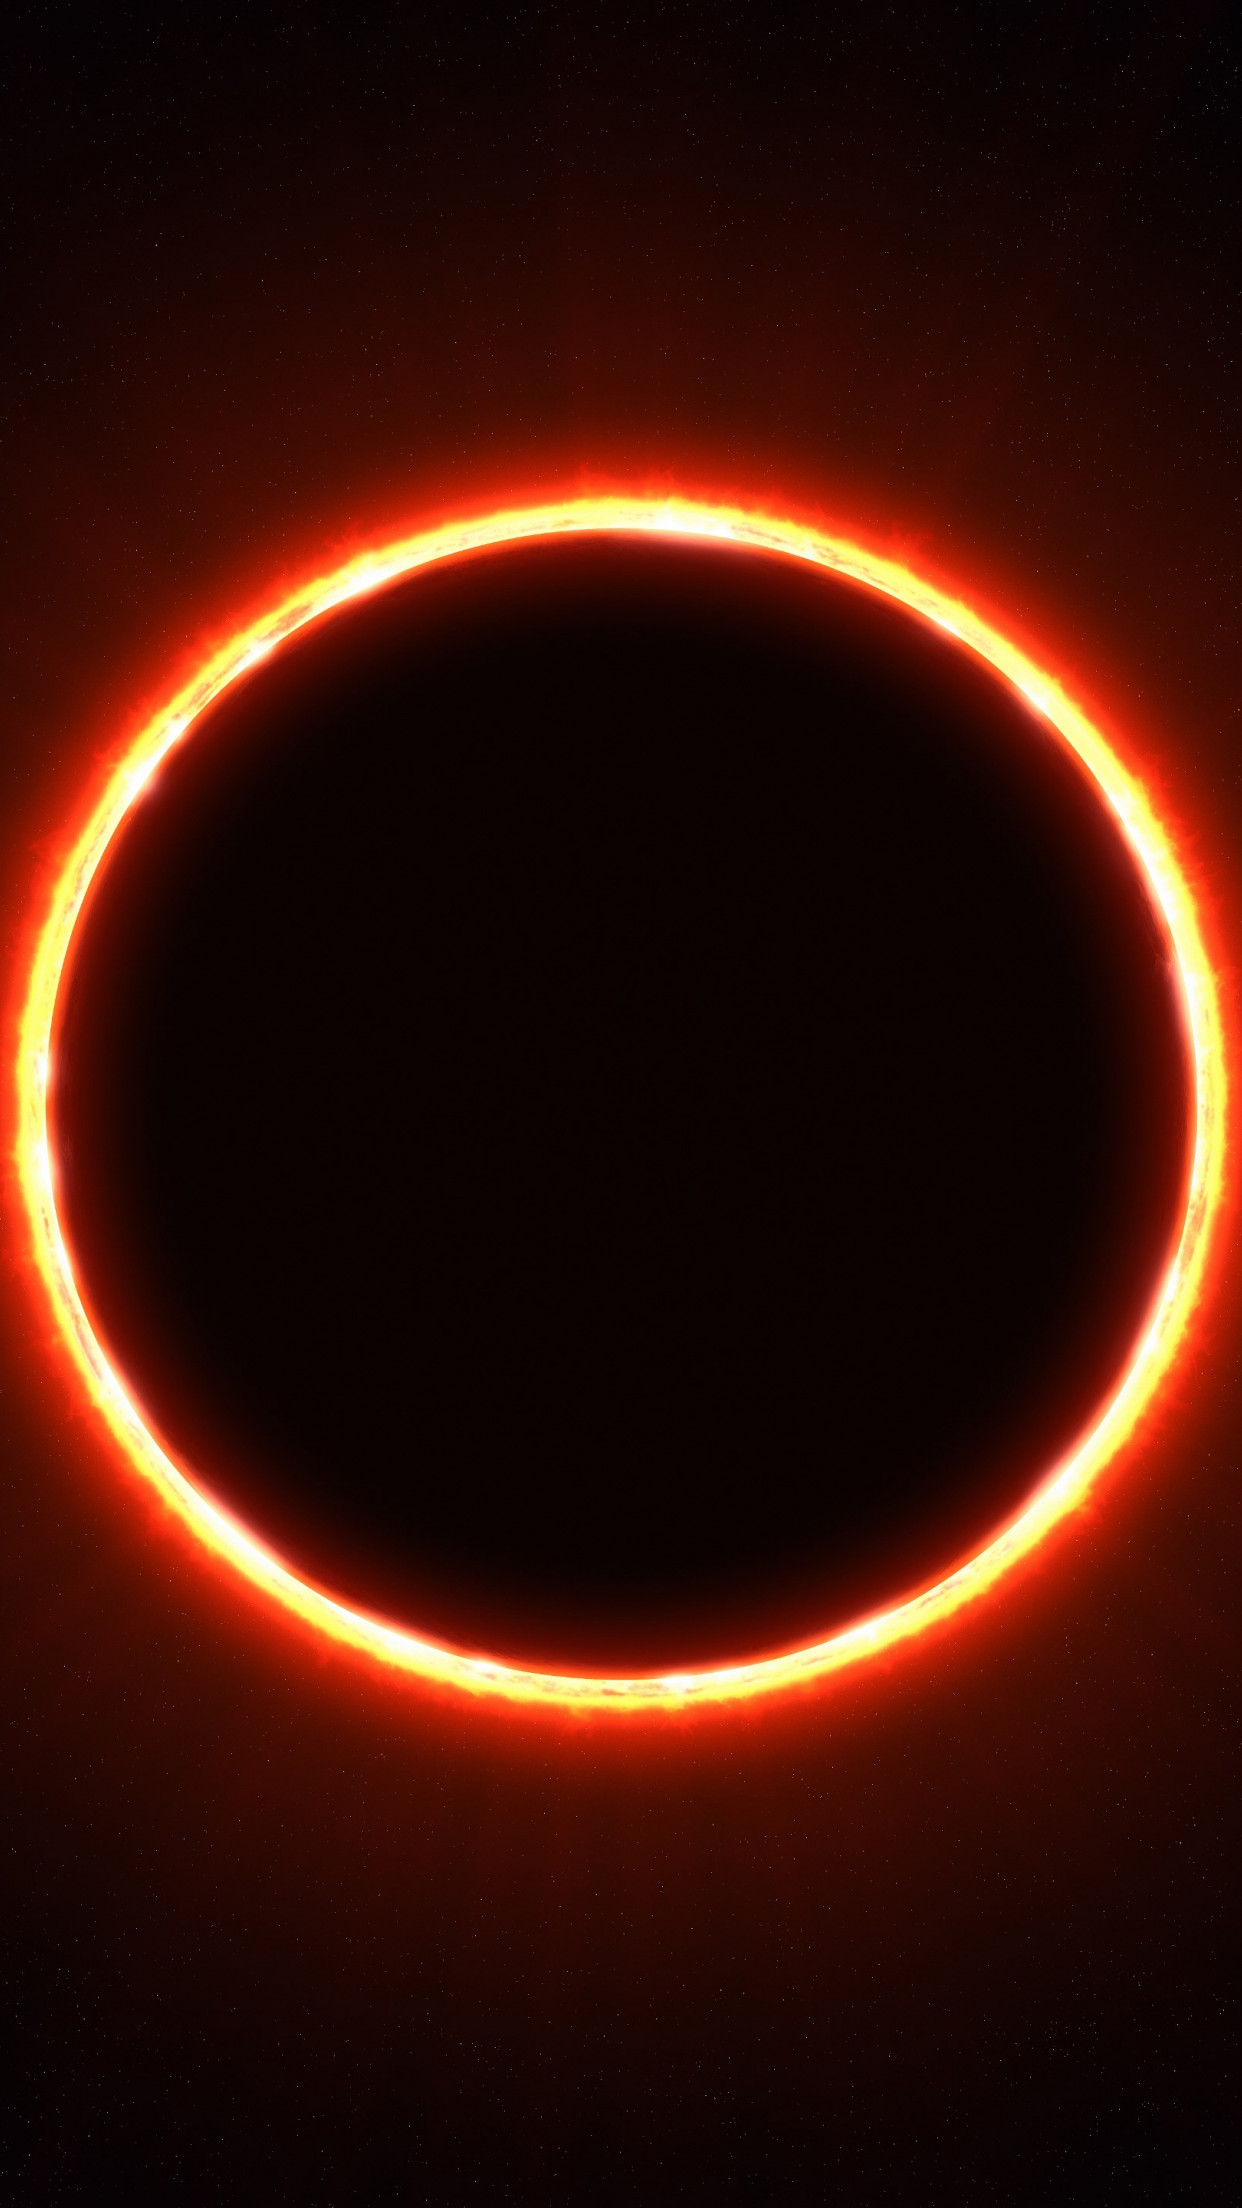 Eclipse wallpaper 1242x2208